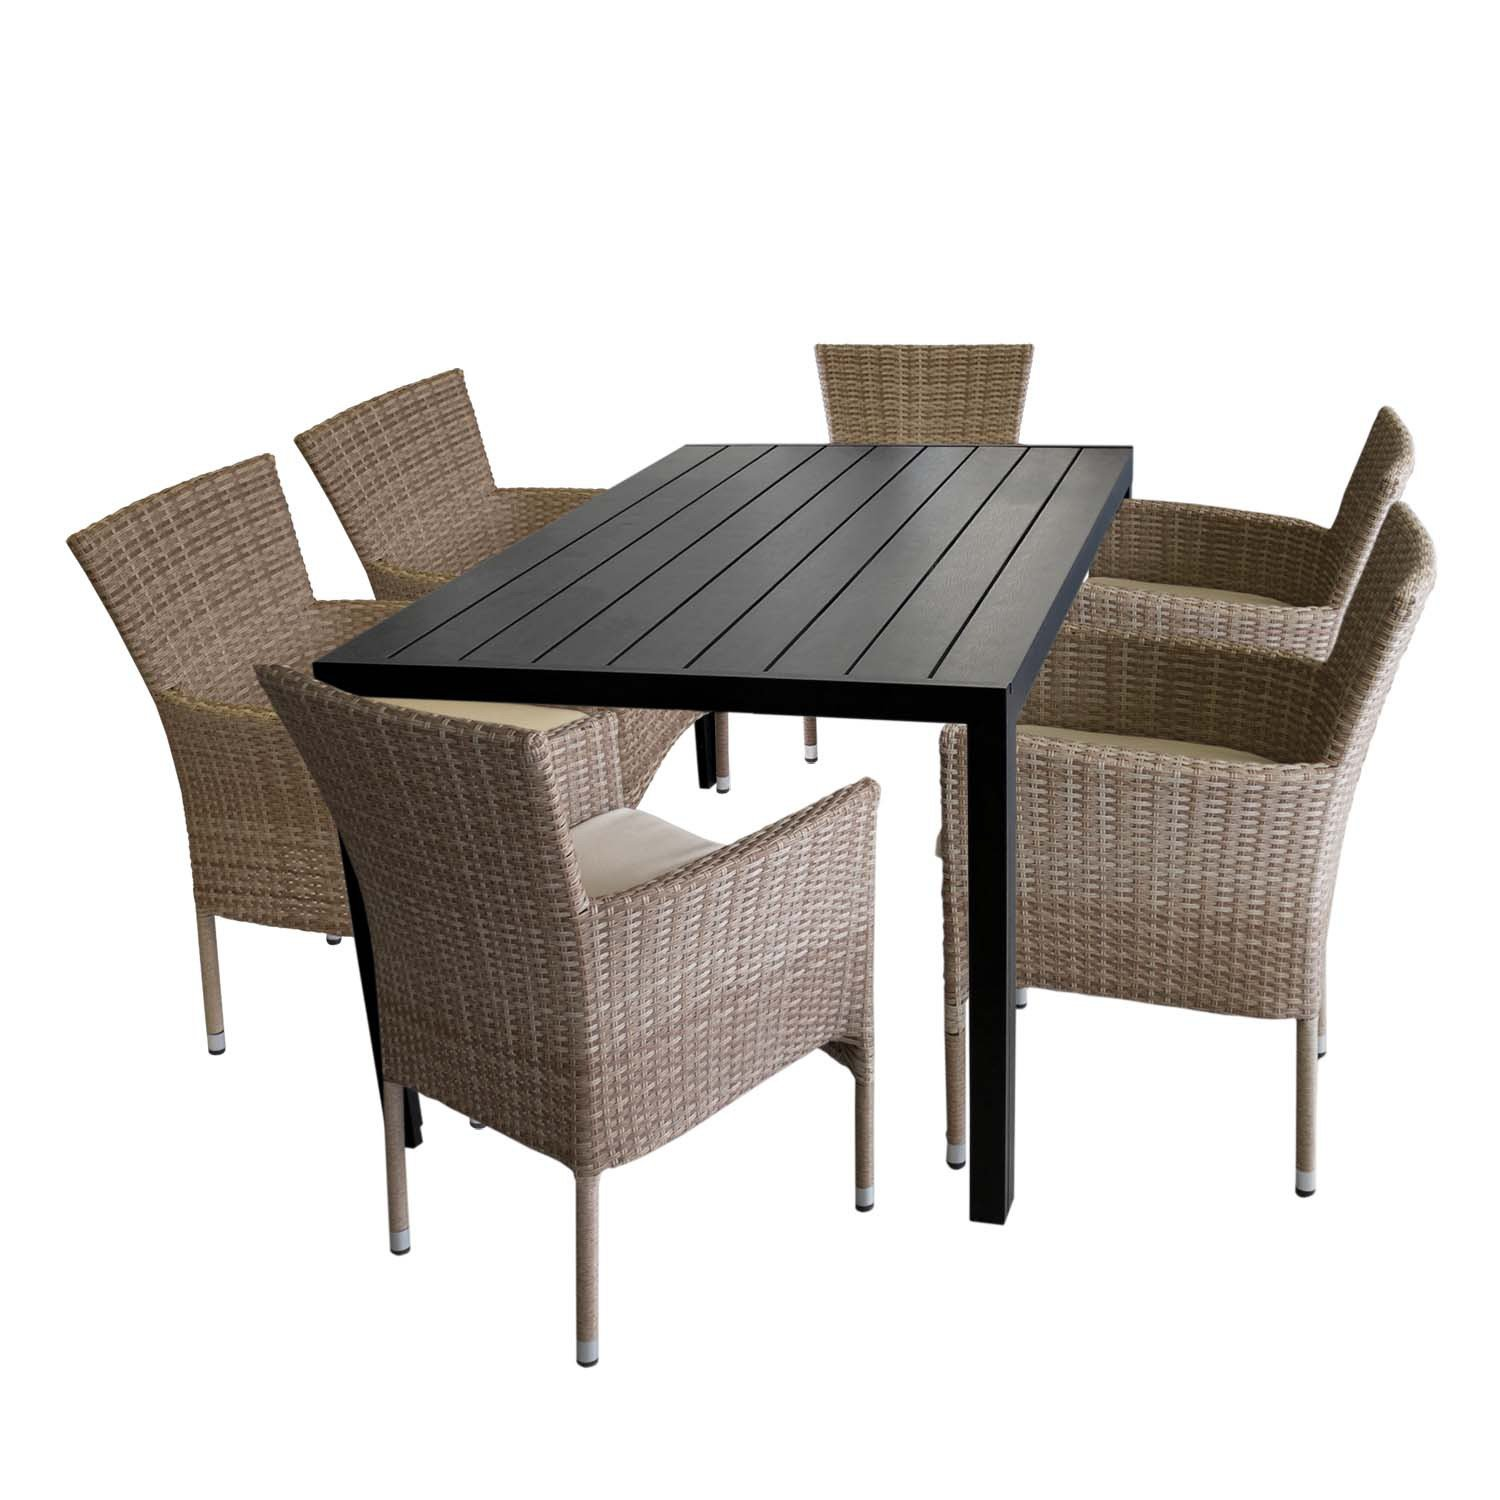 wohaga gartenm bel balkonm bel terrassenm bel bistro set 3 teilig gartengarnitur sitzgruppe. Black Bedroom Furniture Sets. Home Design Ideas